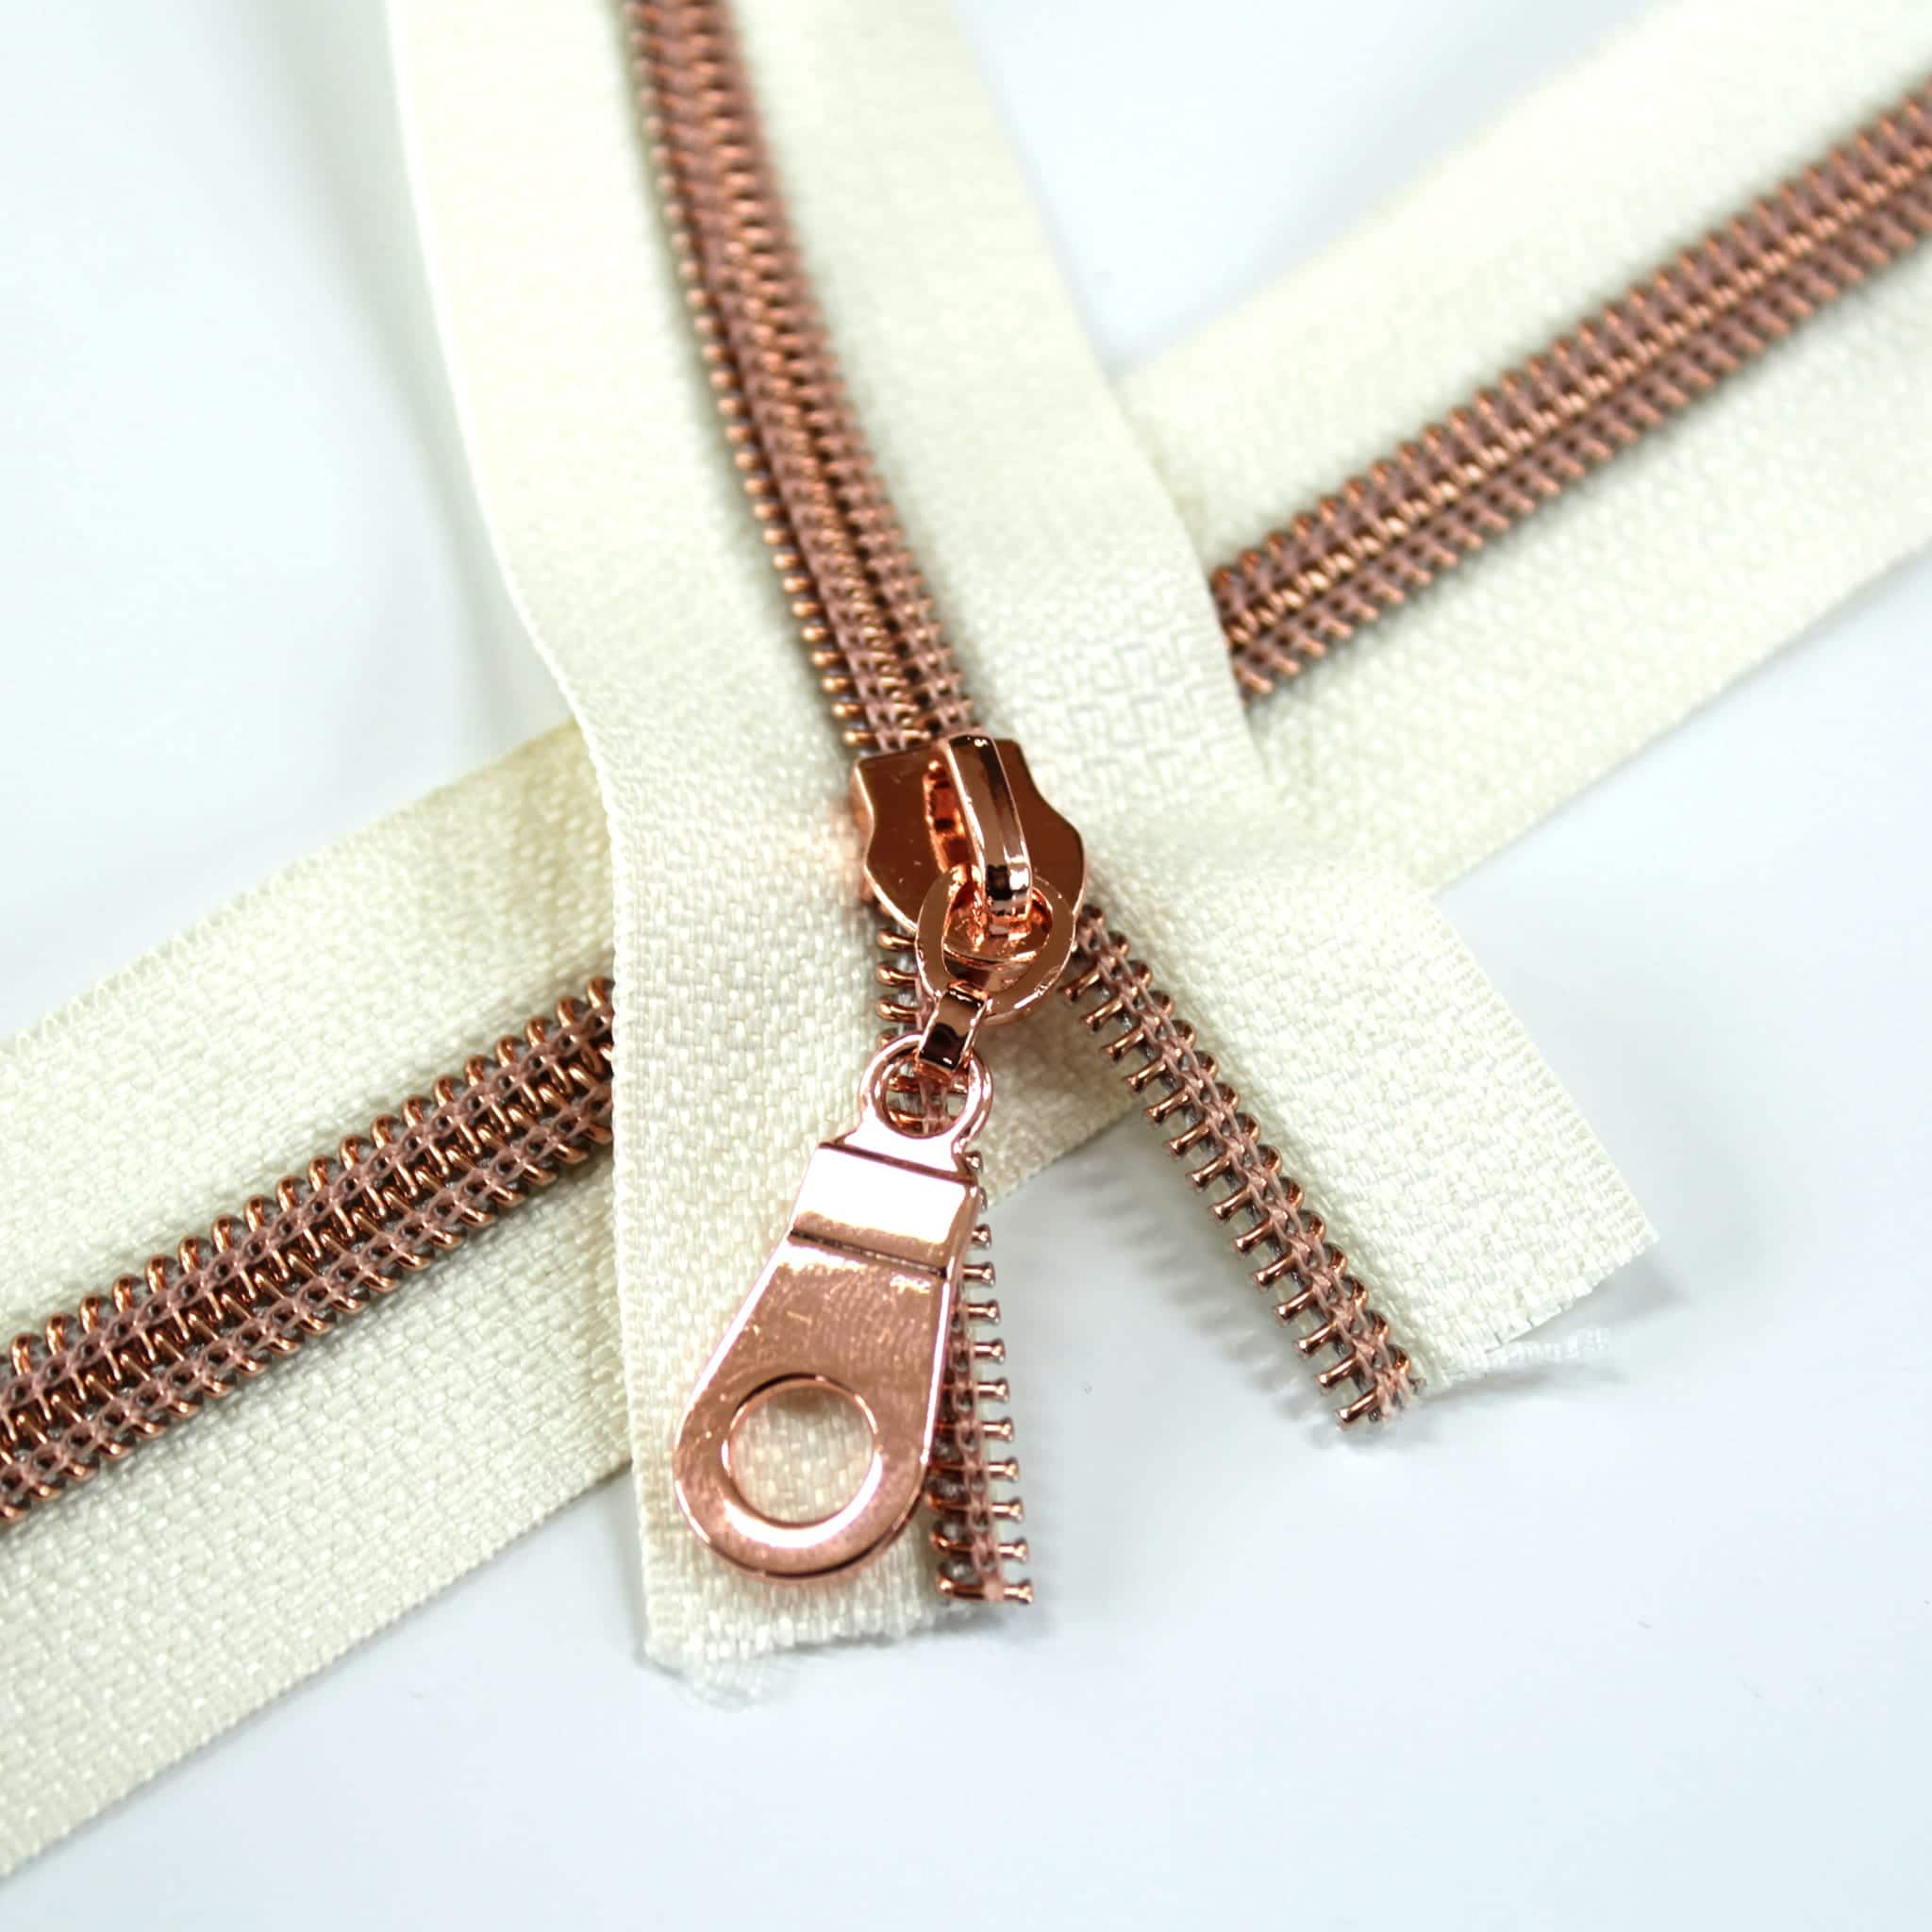 #5-Nylon-Coil-Zipper-ivory-with-rose-gold-teeth